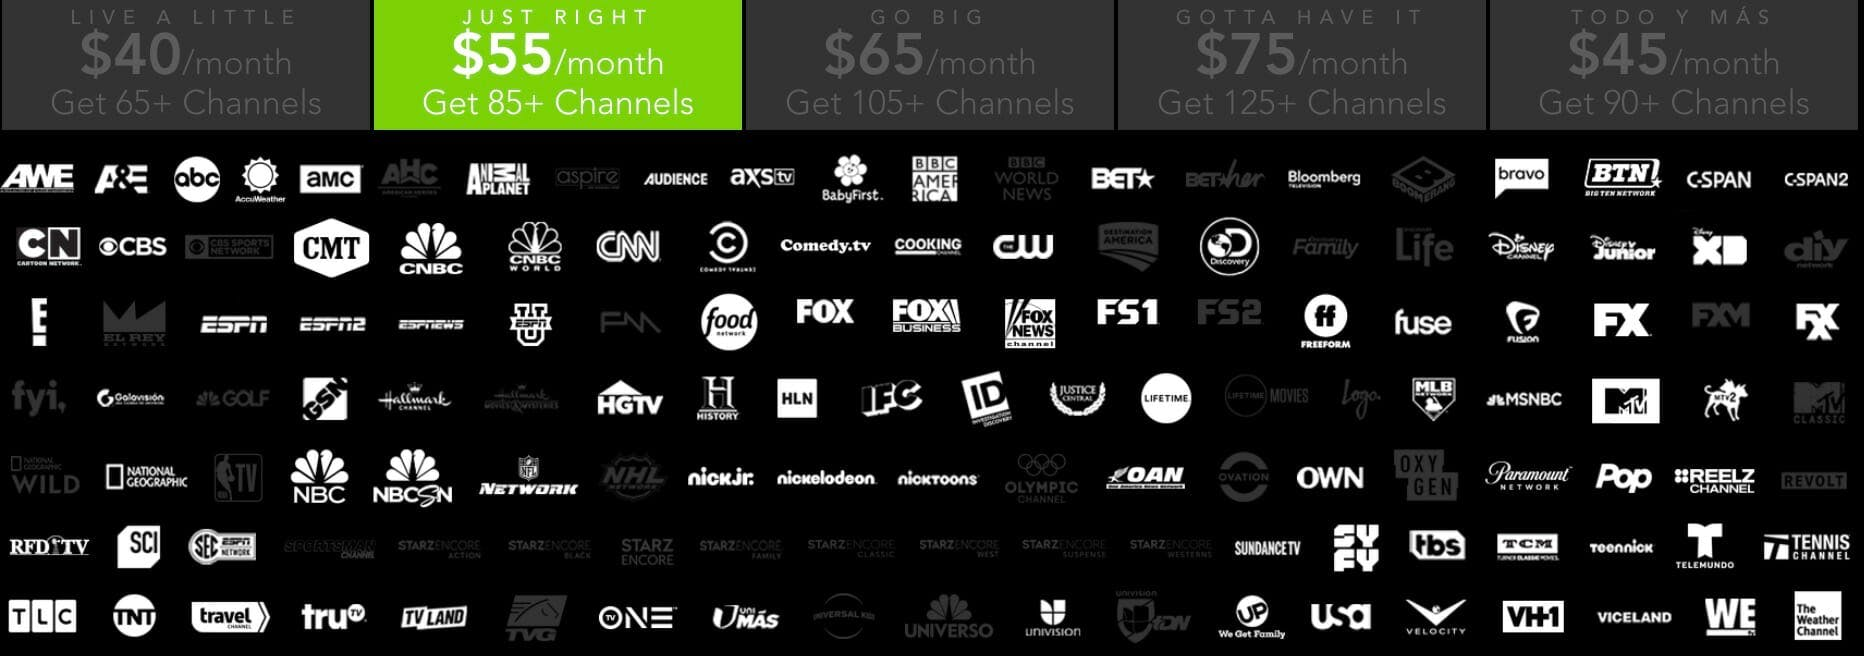 directv now channel lineup - just right